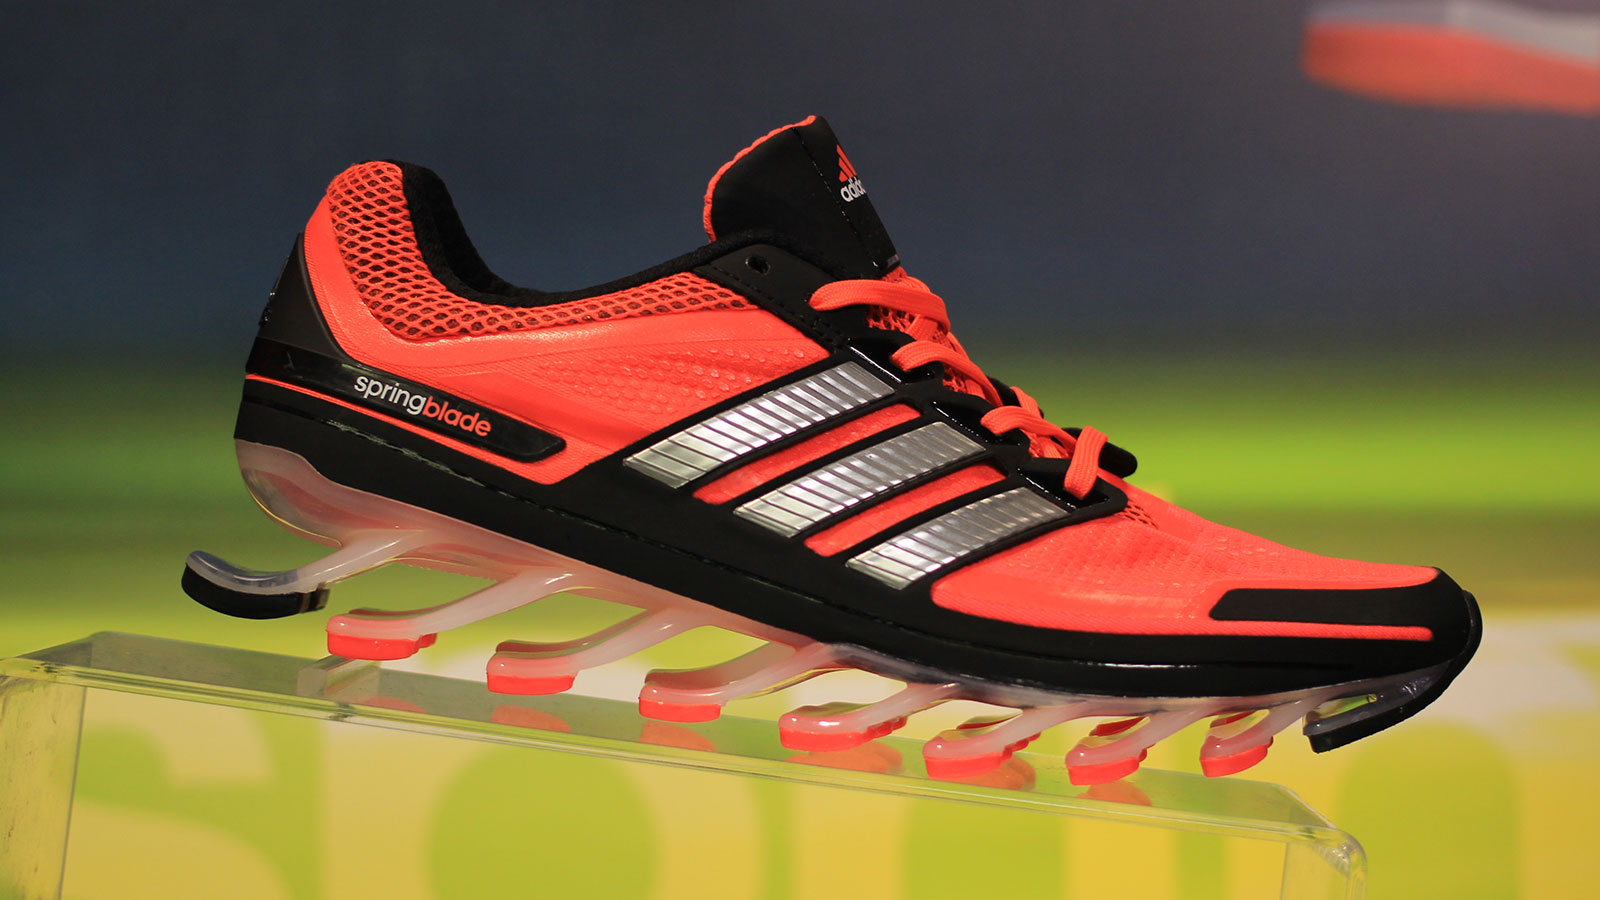 Adidas Springblade: Shoes With Actual Springs Might Be A Good Idea